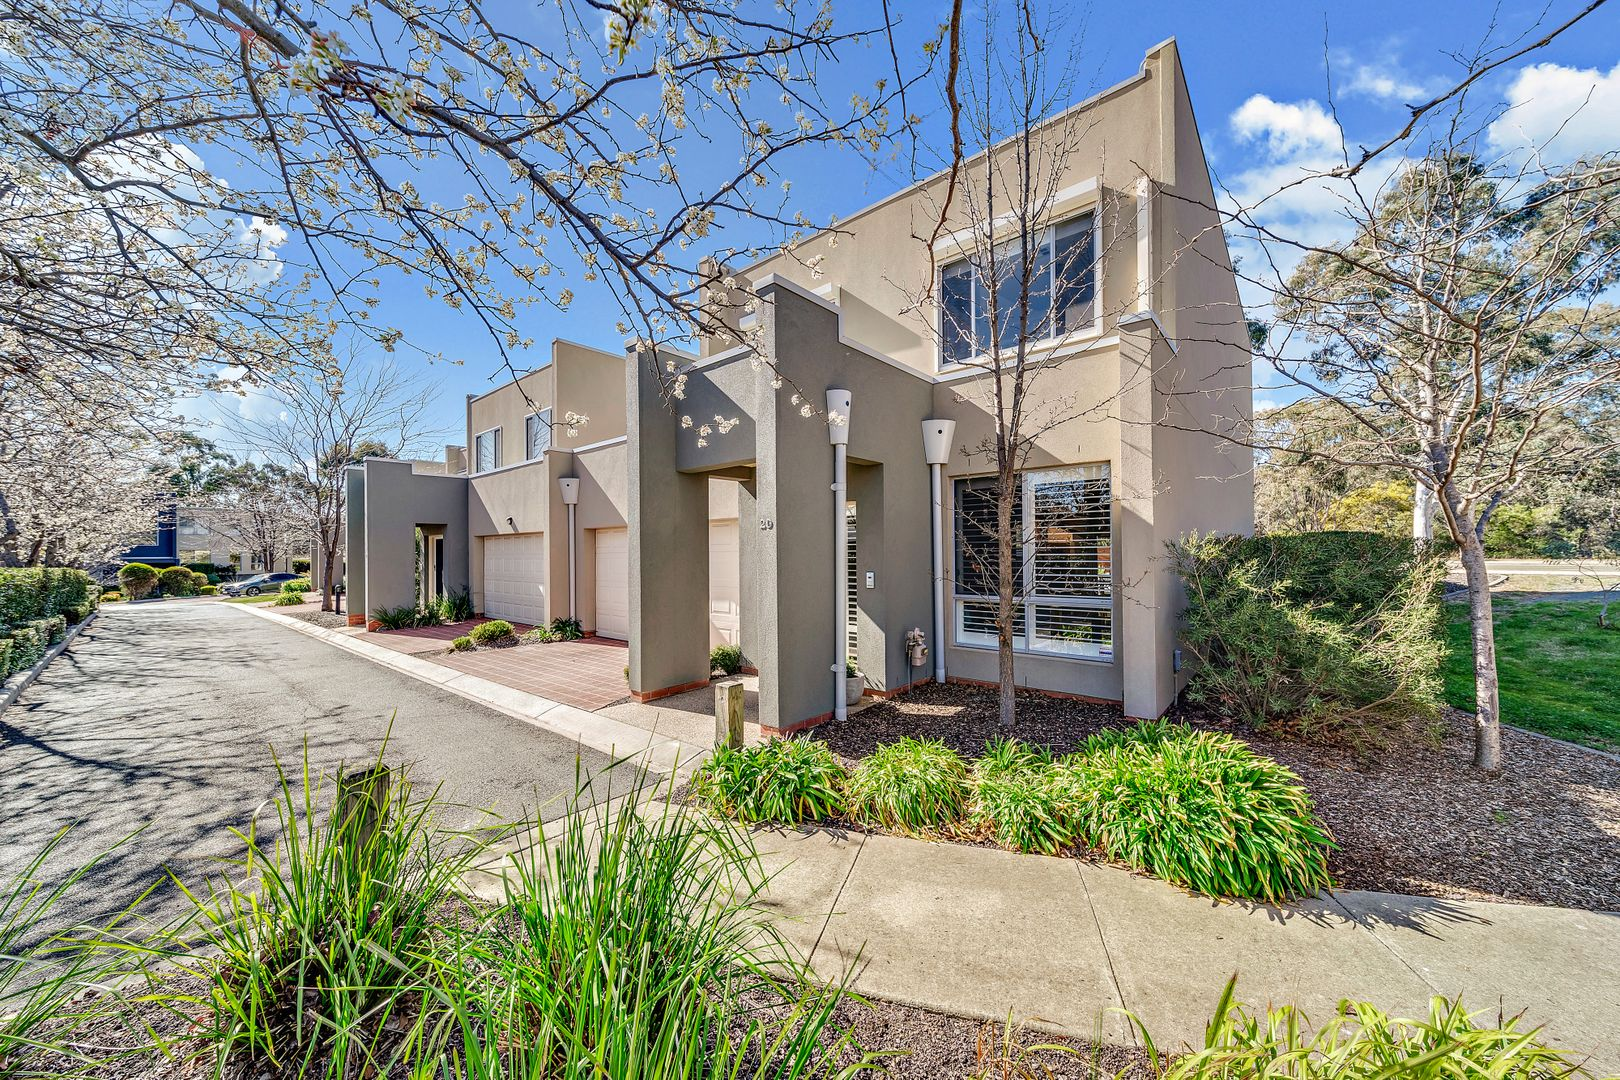 20/34 Morell Close, Belconnen ACT 2617, Image 0